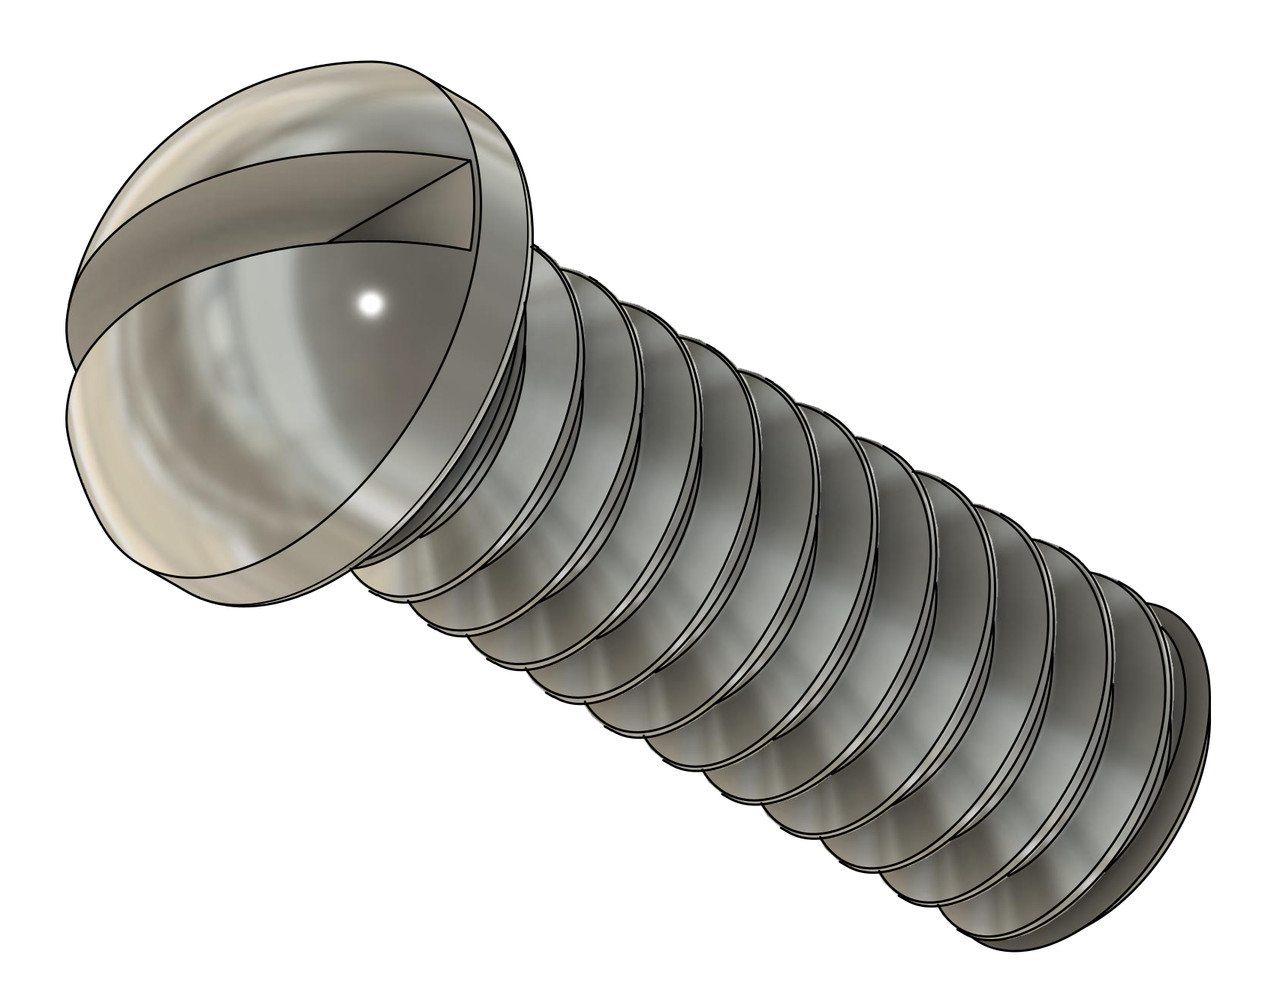 Machine Screw Round Head,  Thread M1.2x.25mm (1.20UNM} Head Diameter 1.7mm, Overall Length 4.0mm  Material: Stainless Steel, Finish Color Silver